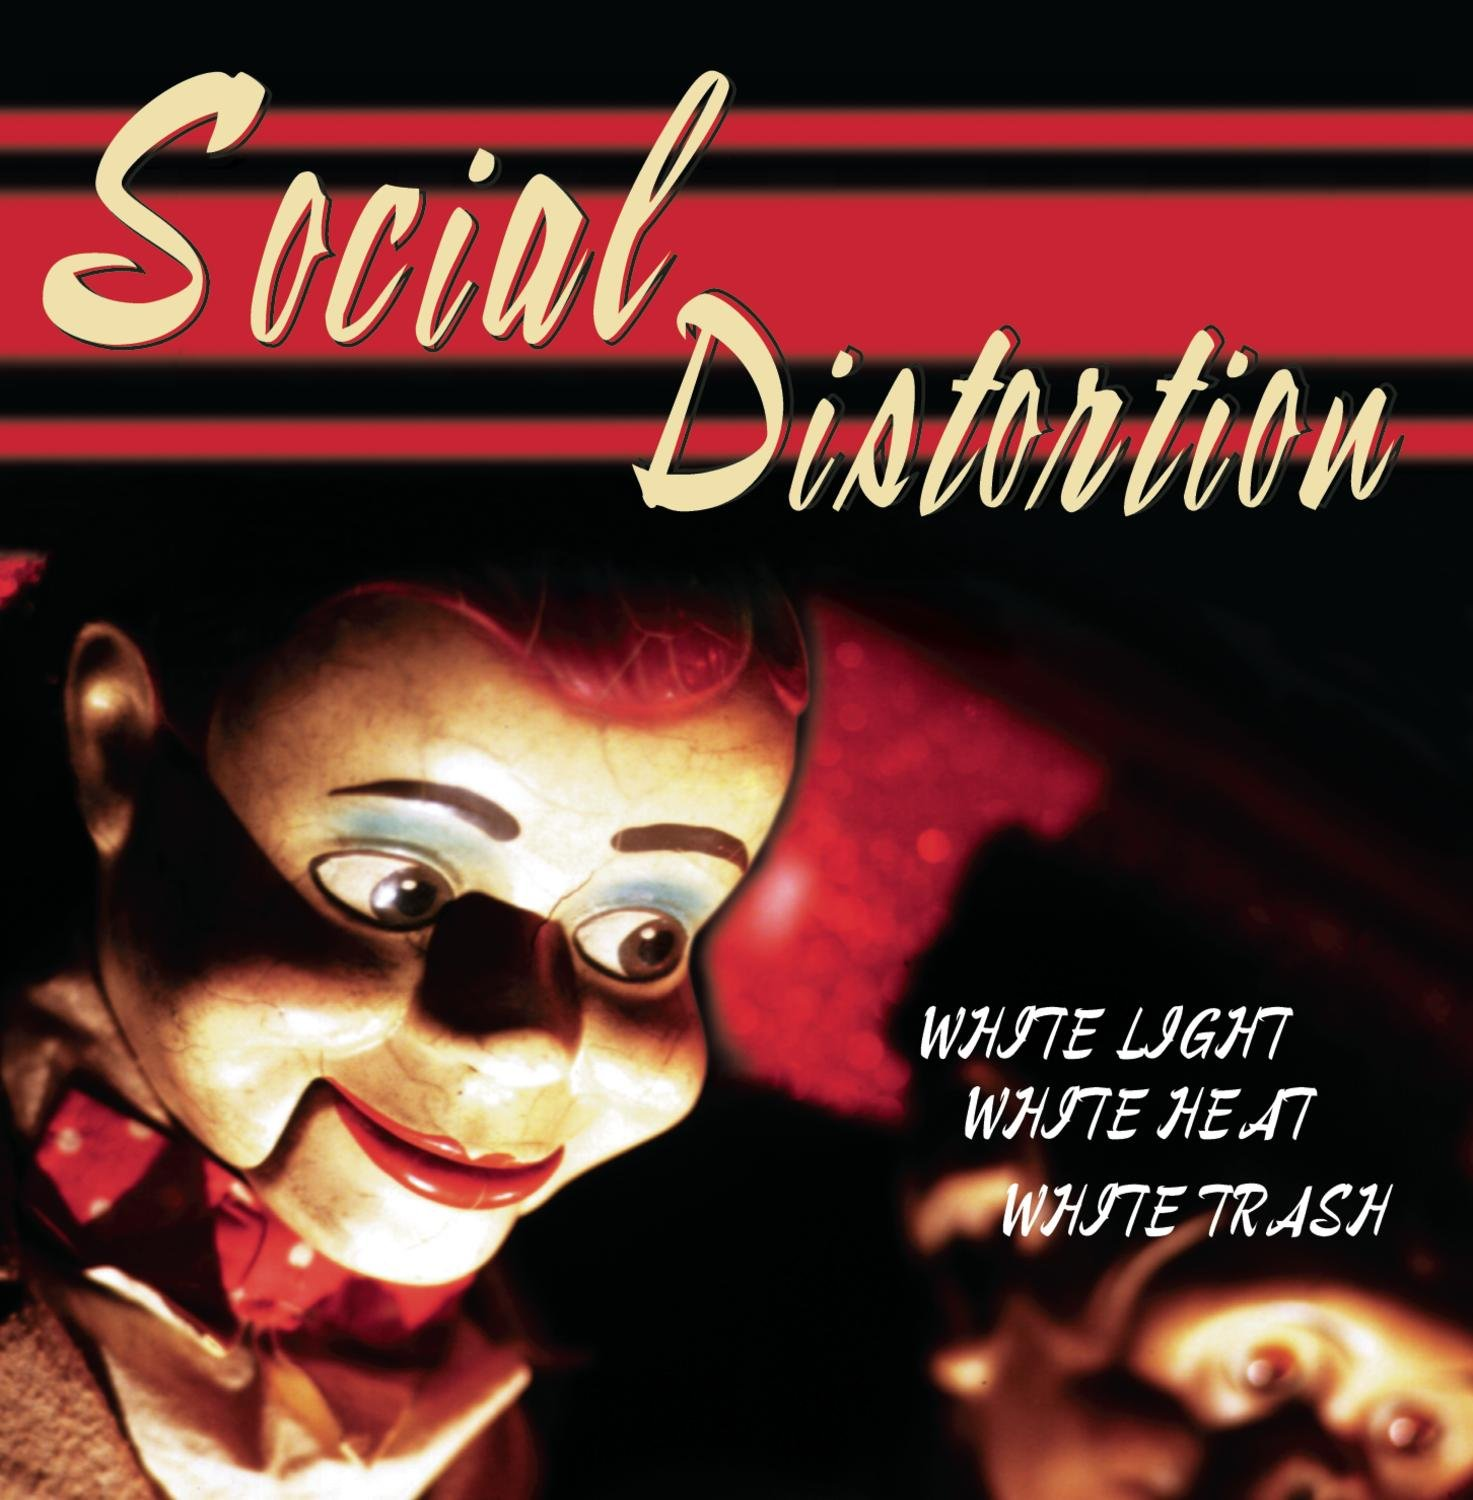 Social Distortion - White Light, White Heat, White Trash [LP]